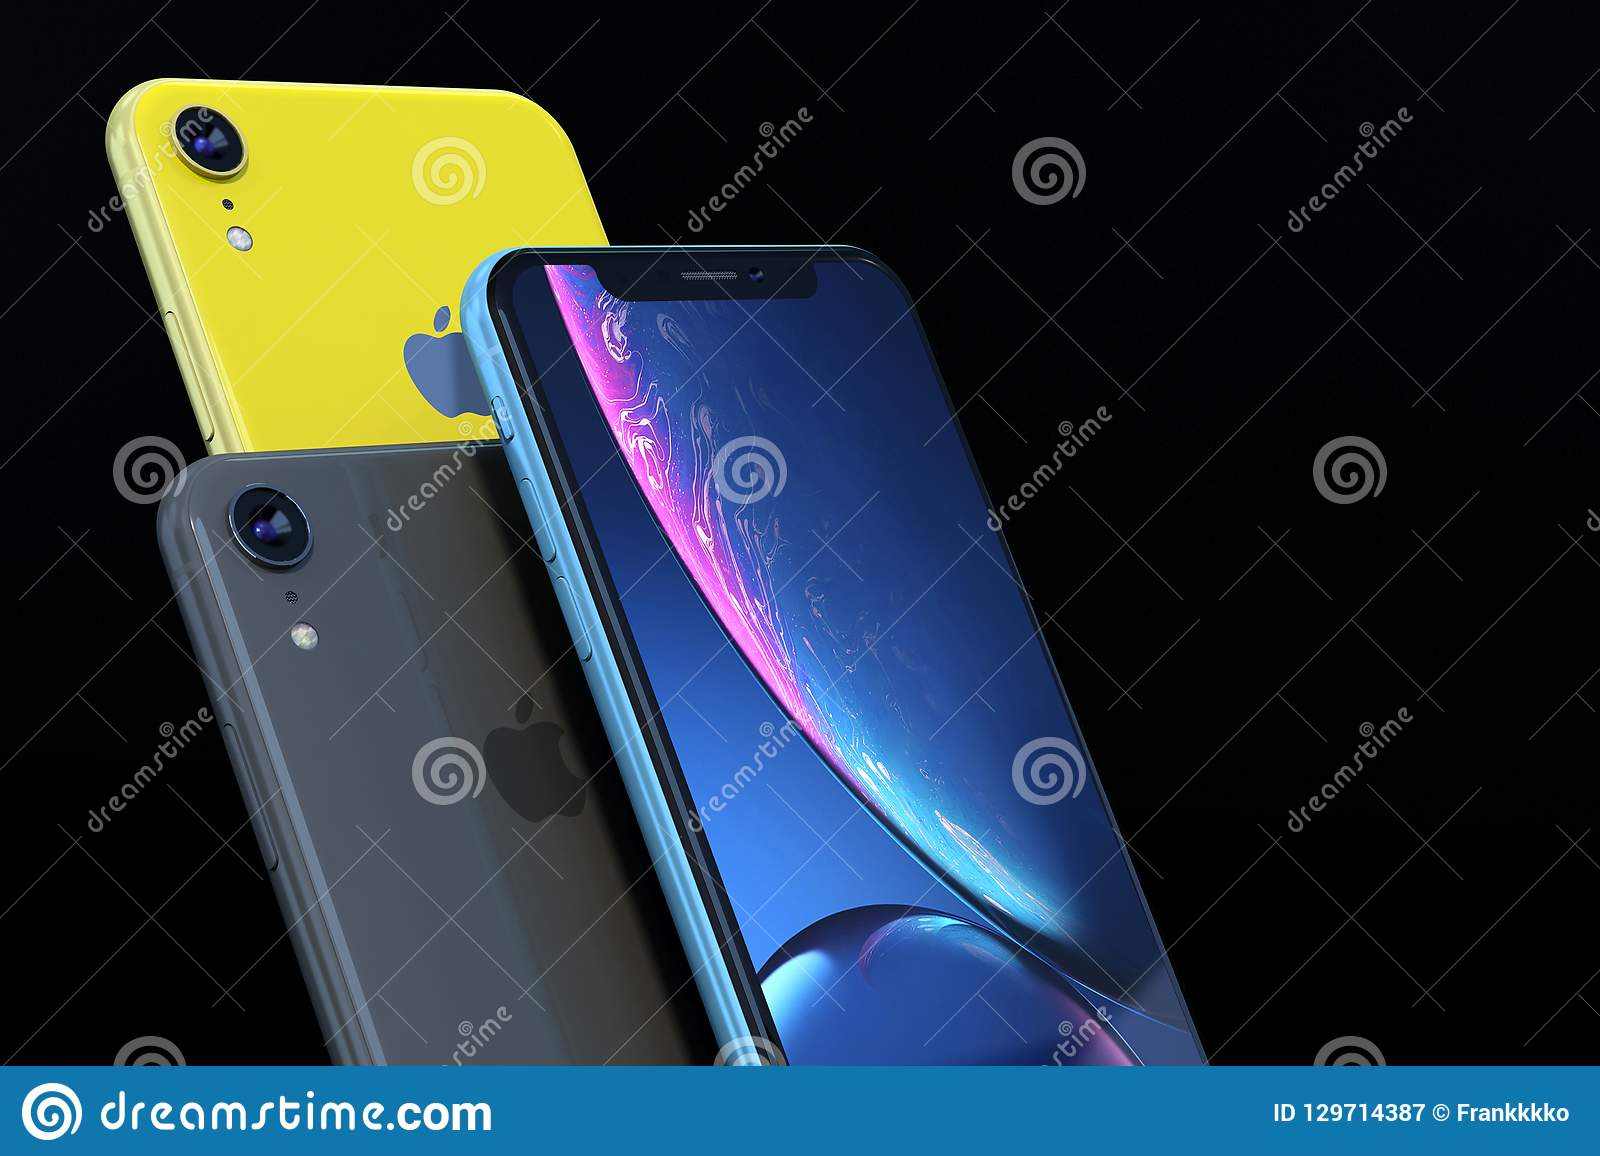 Product Shot Of Iphone Xr Blue And Yellow On Black